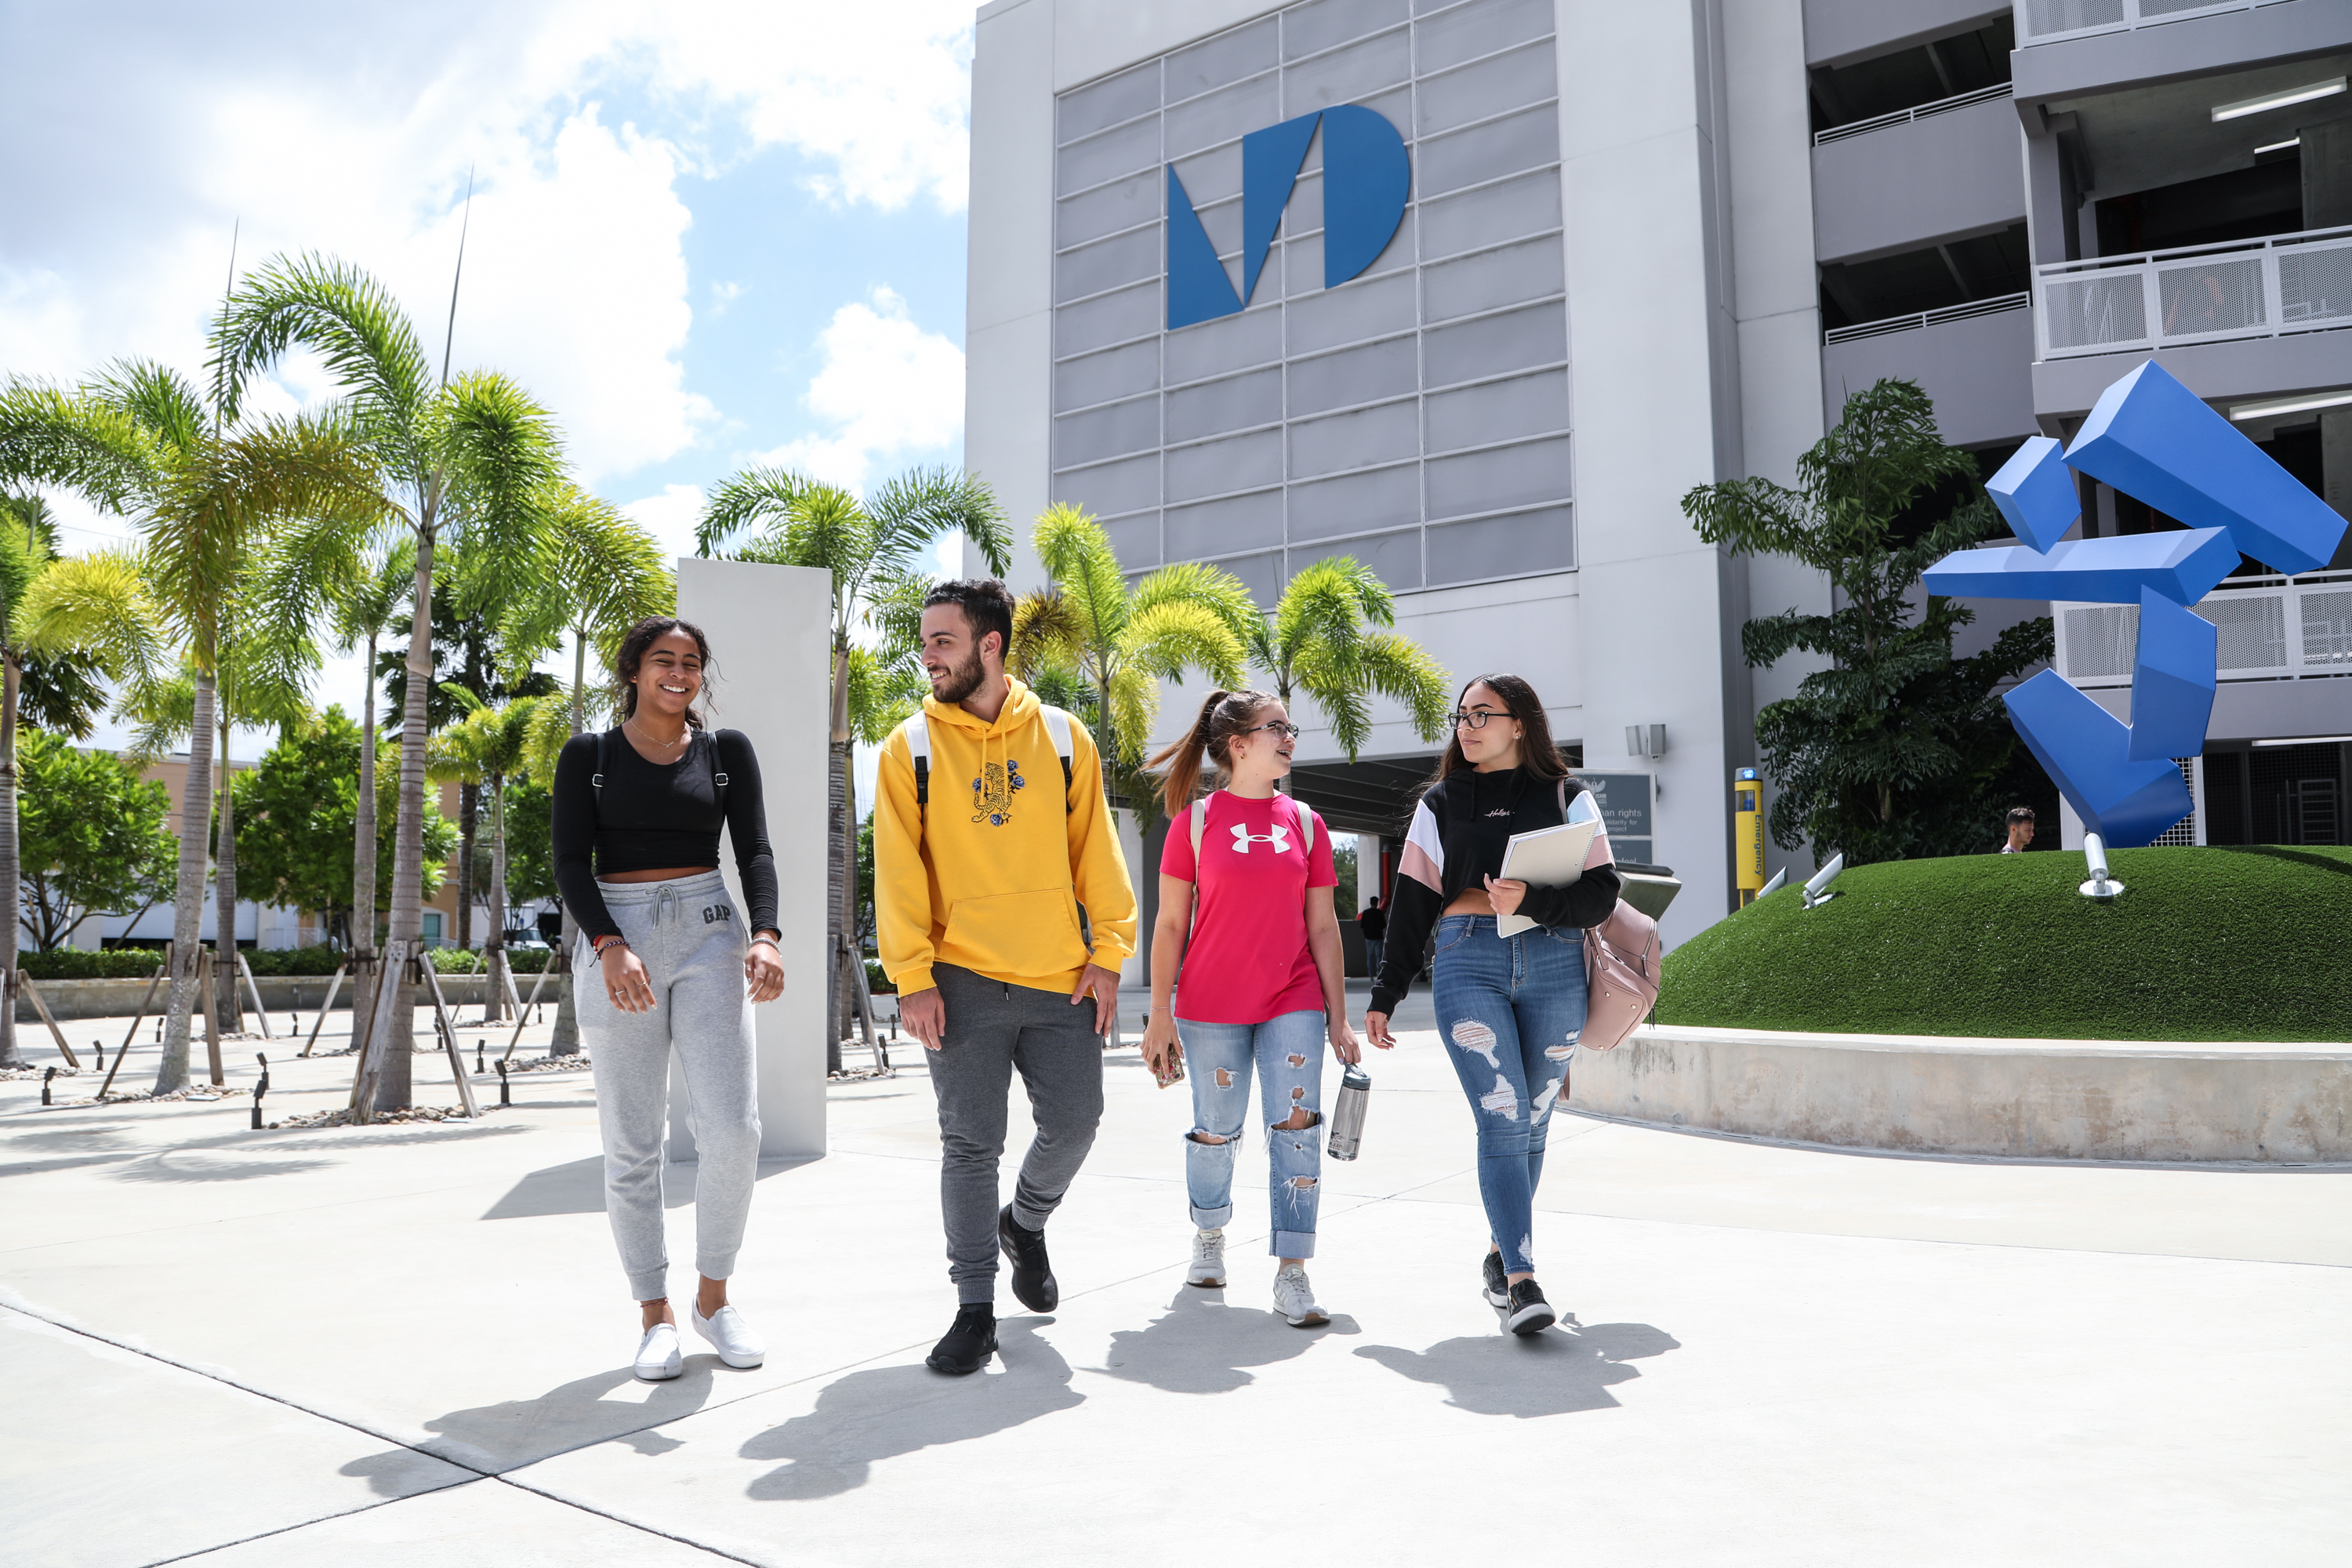 First week of classes at West Campus, Fall semester 2019, September 19, 2019